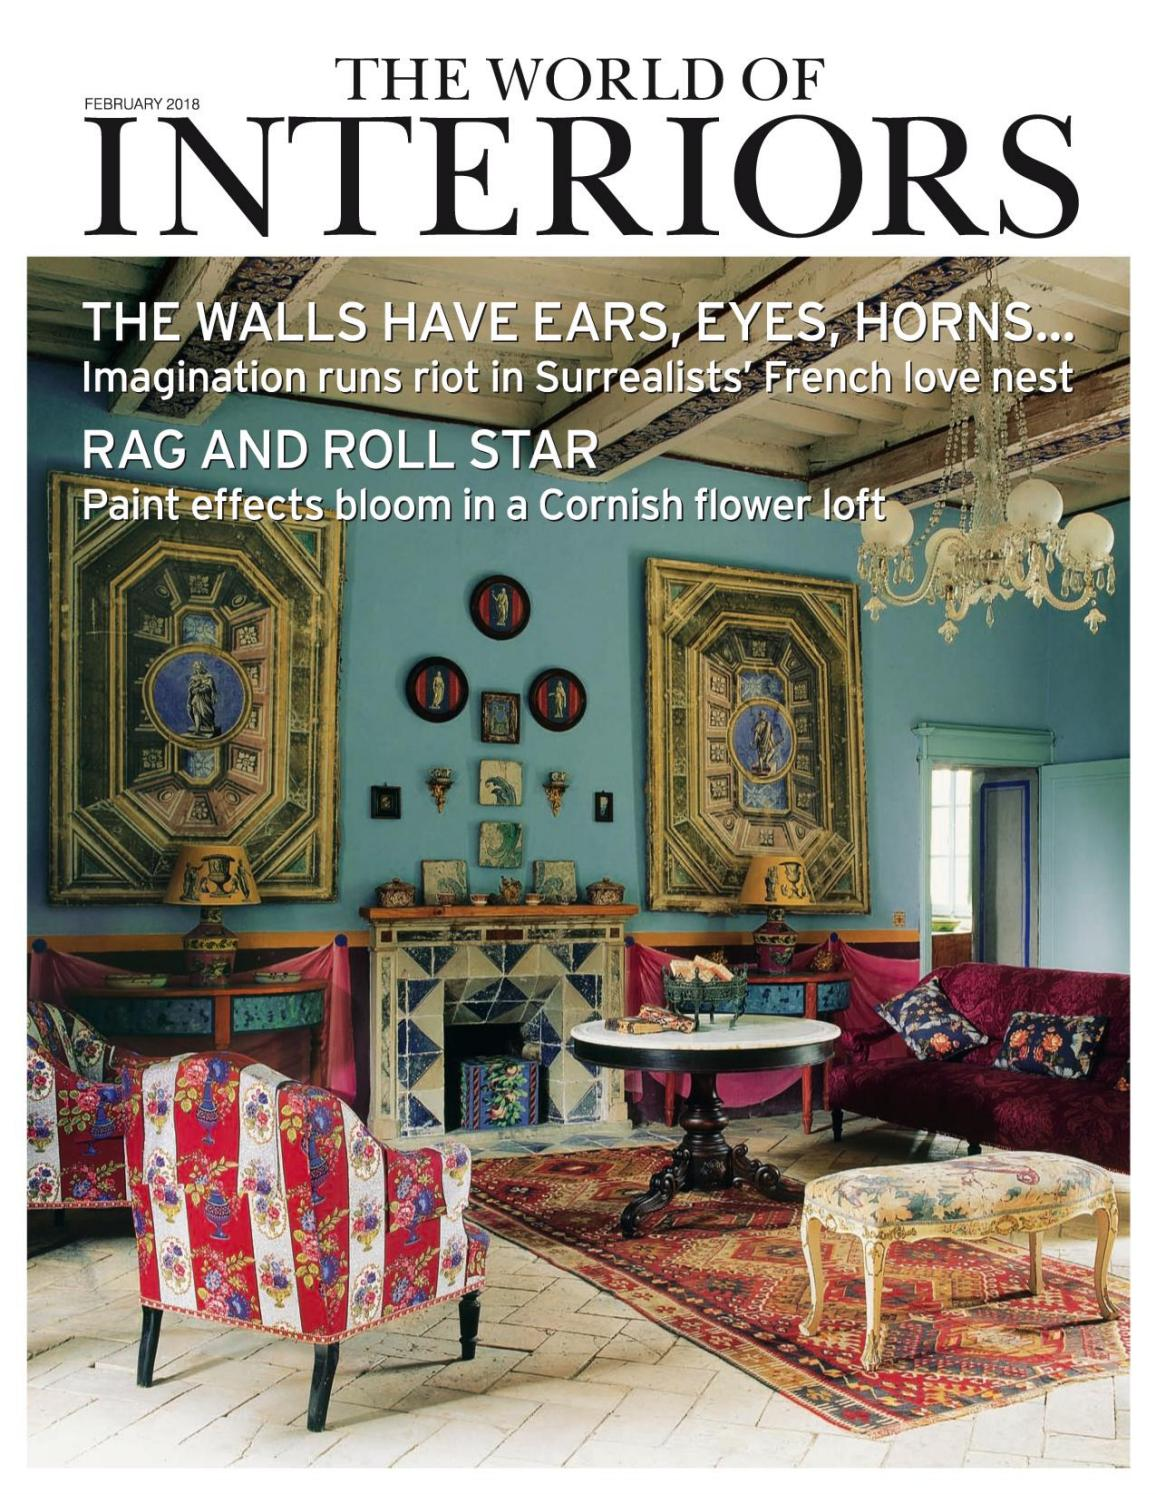 majestic interiors pany profile interior designers in online interior design firms The World of Interiors - February 2018 by Andrea Palmieri - issuu